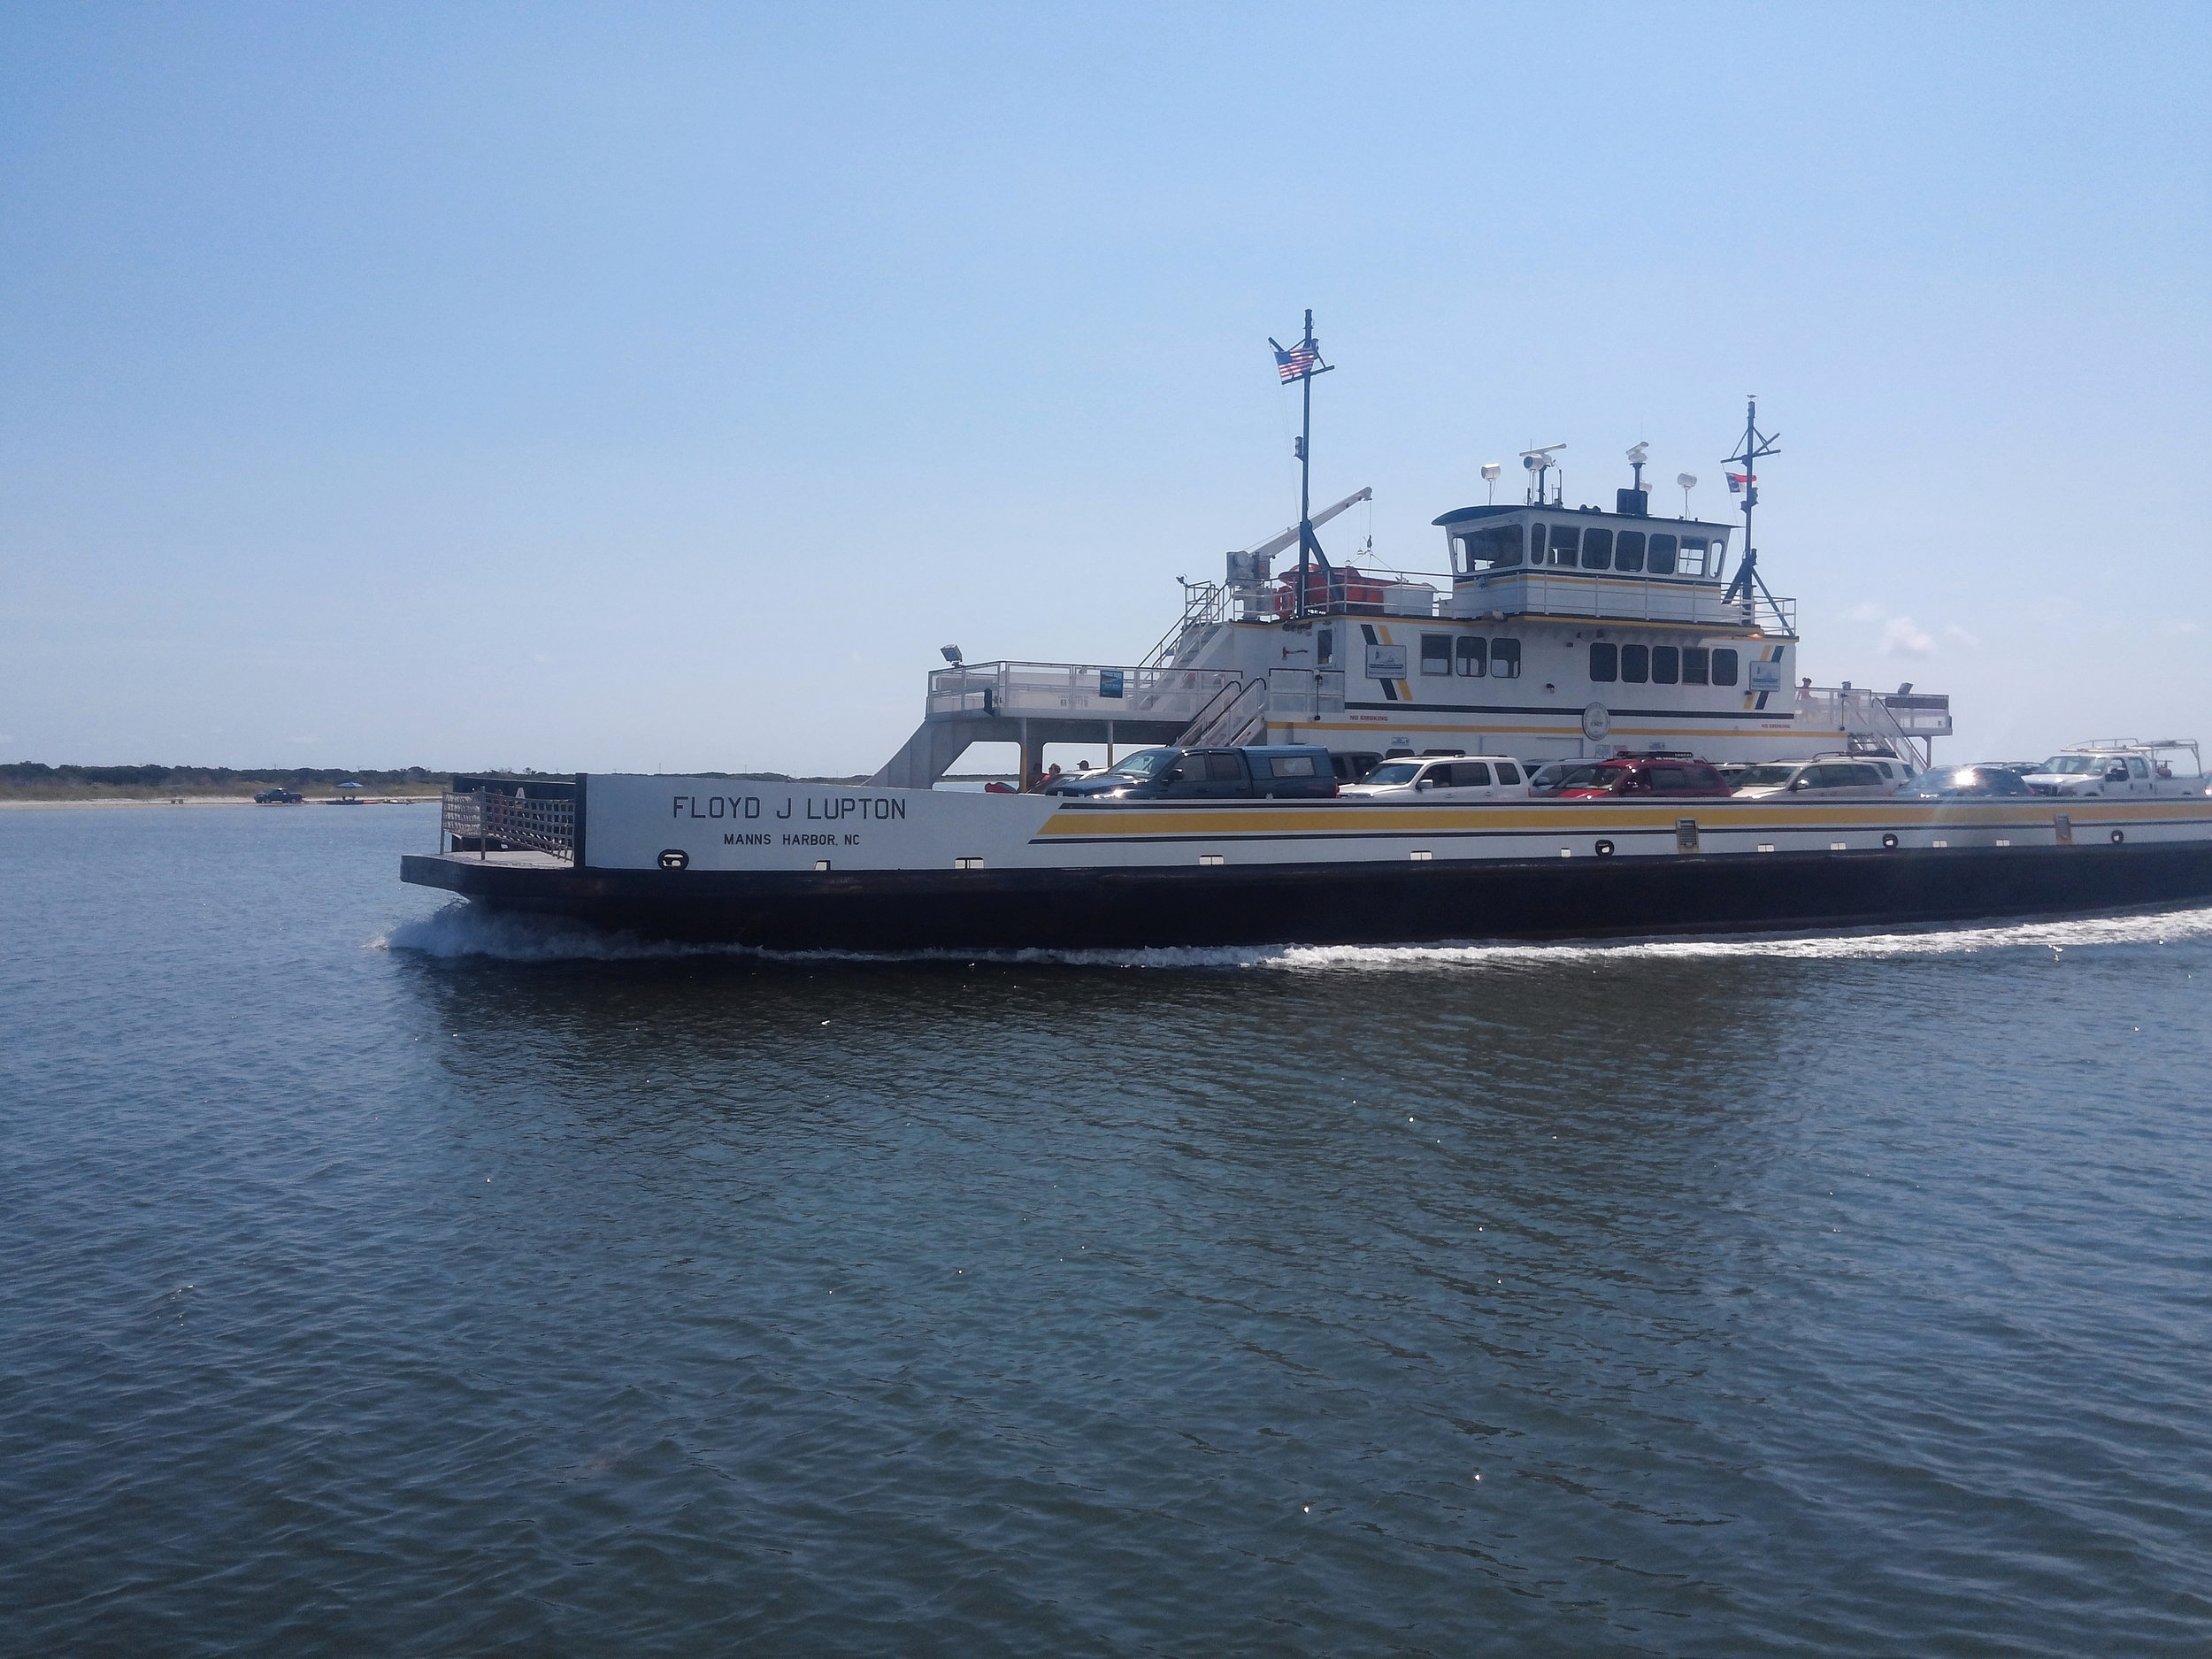 A full view of one of the ferries.